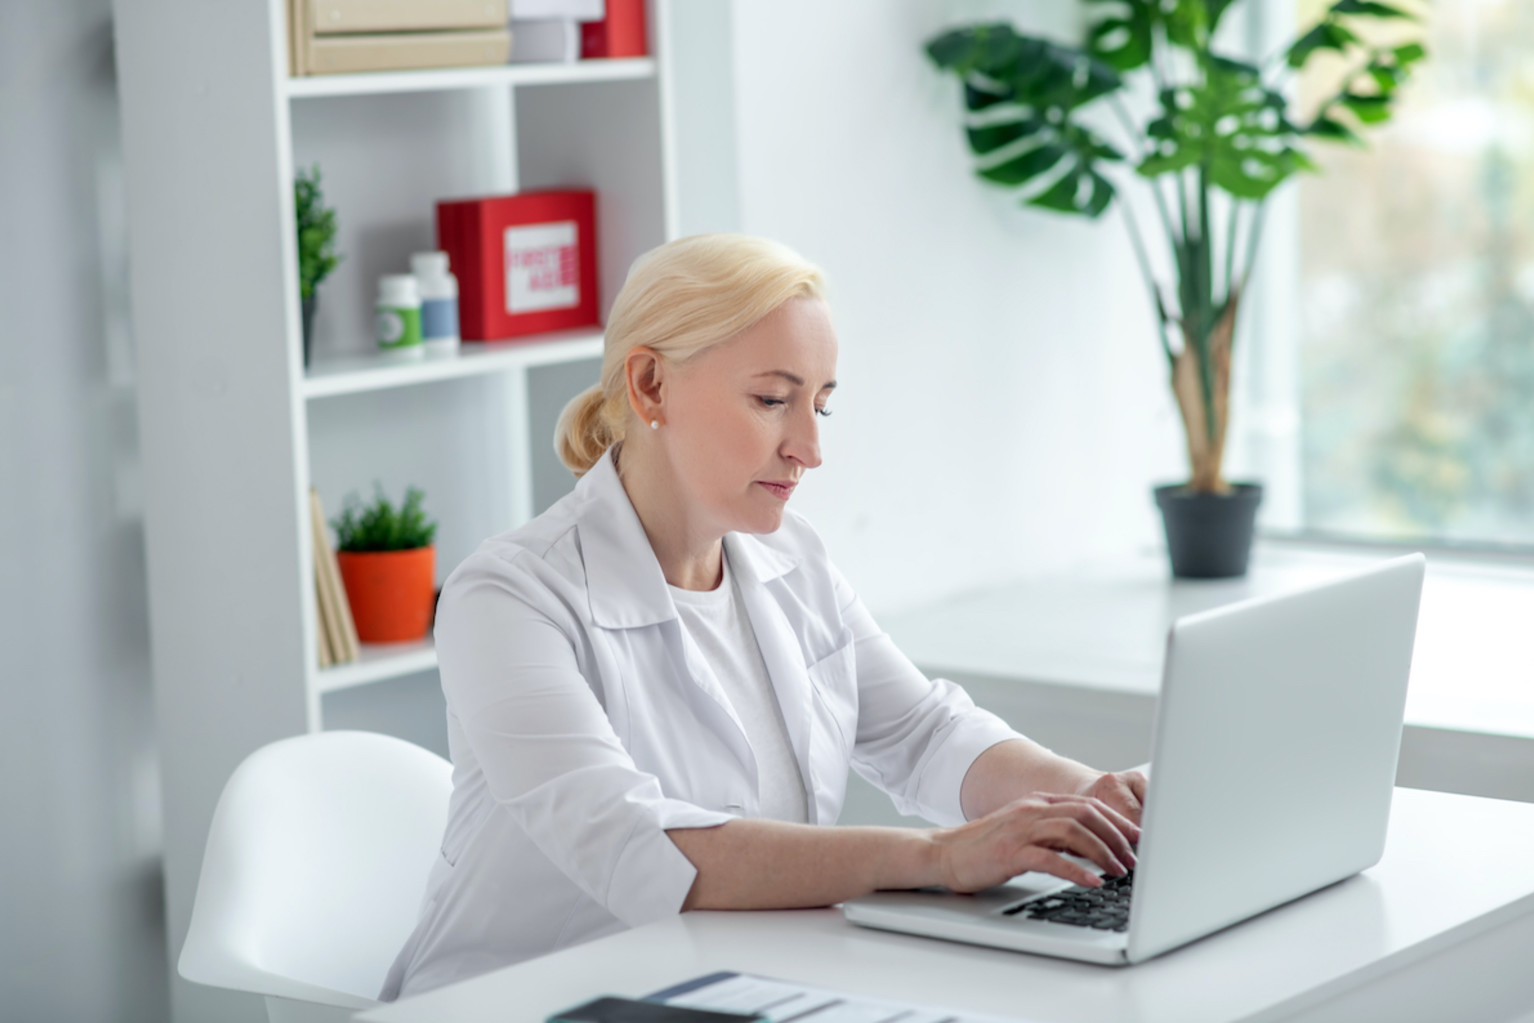 How to Take Your Practice Online and Help Self-Isolating Patients